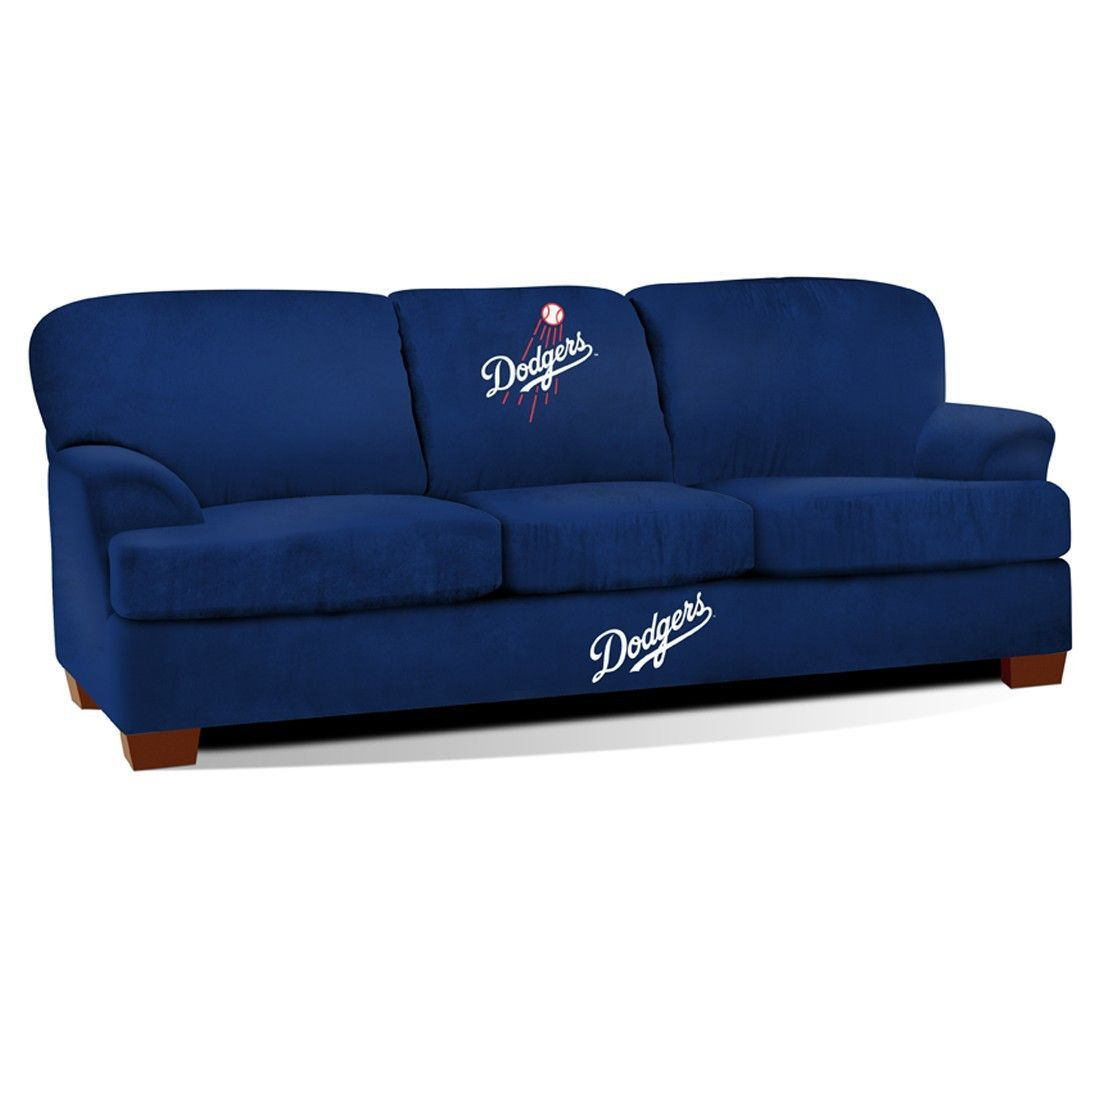 Sofas For Sale First Team Microfiber Sofa Los Angeles Dodgers Fan Cave Couch